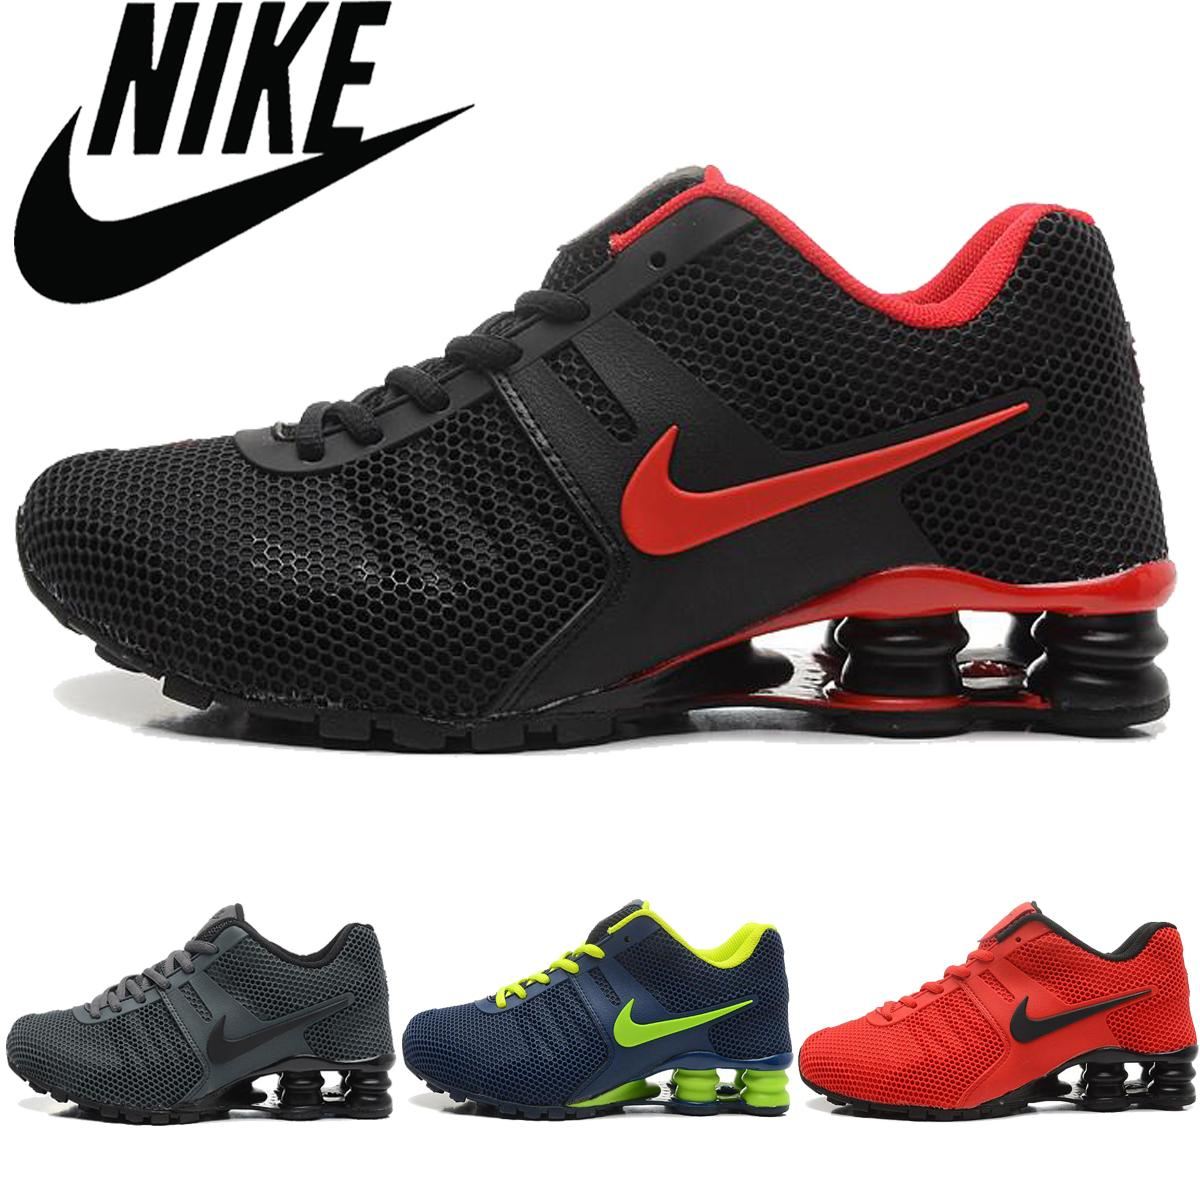 2016 Nike Shox 87 Turbo Kpu Men Running Shoes,Wholesale Mens Nike Air Shox Nz,R4,R2 Current ...